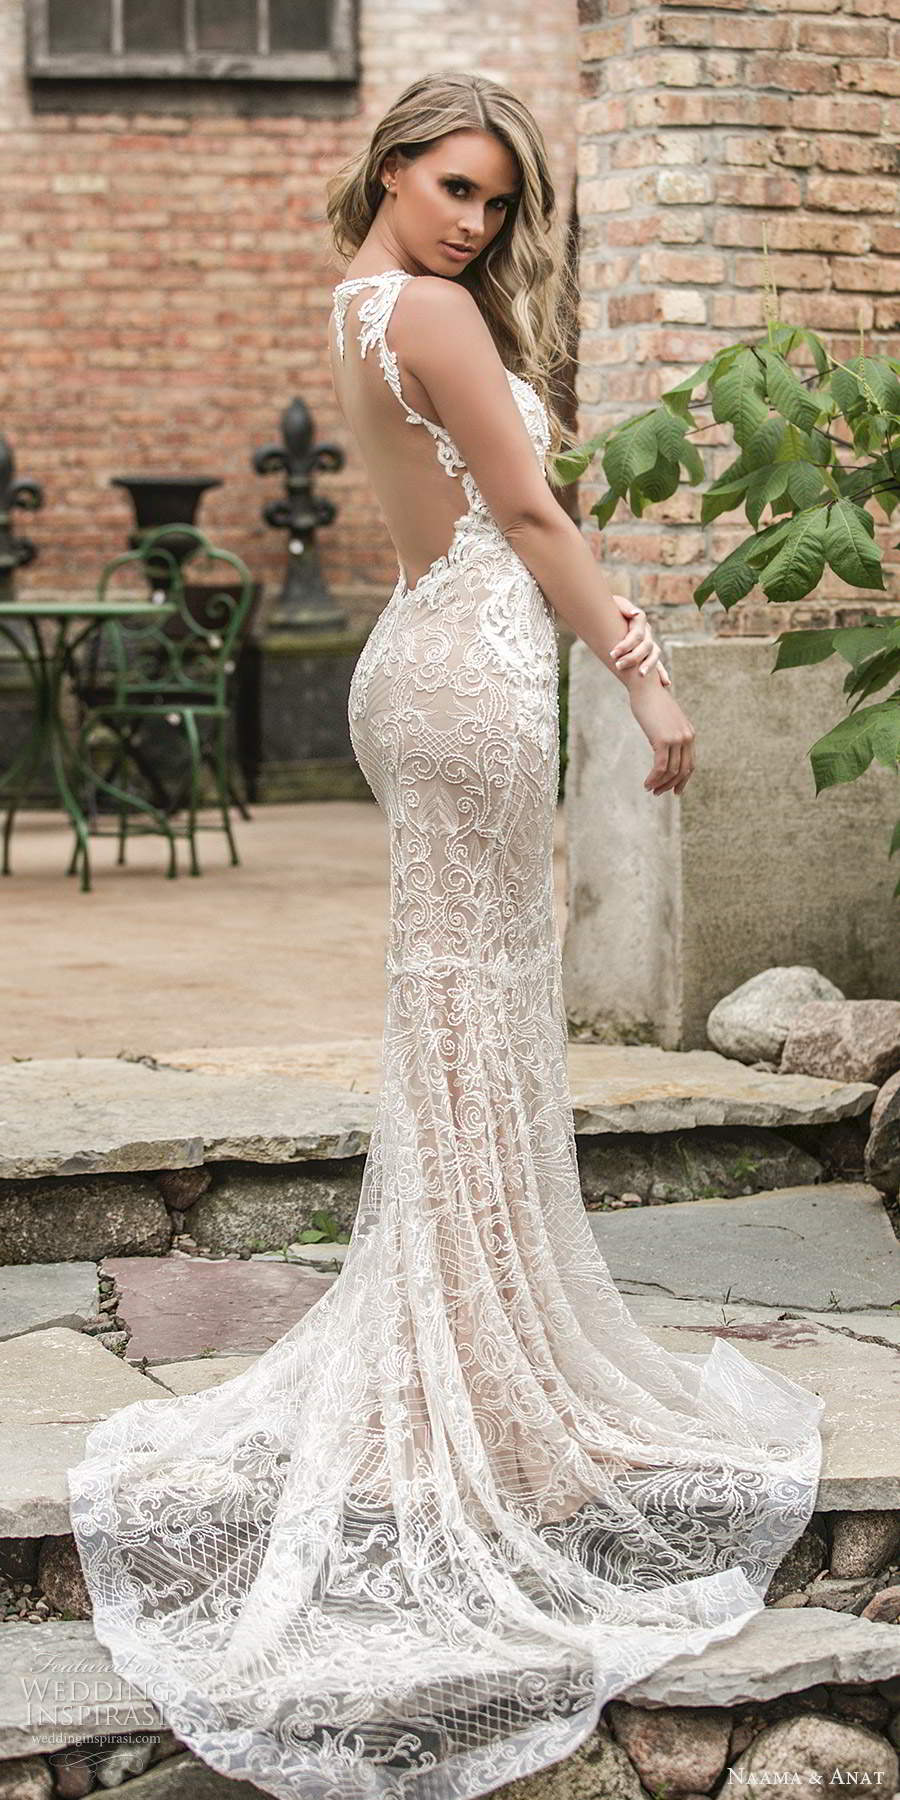 naama and anat 2021 bridal sleeveless halter neckline cutout bodice fully embellished lace sheath wedding dress illusion back chapel train (5) sv